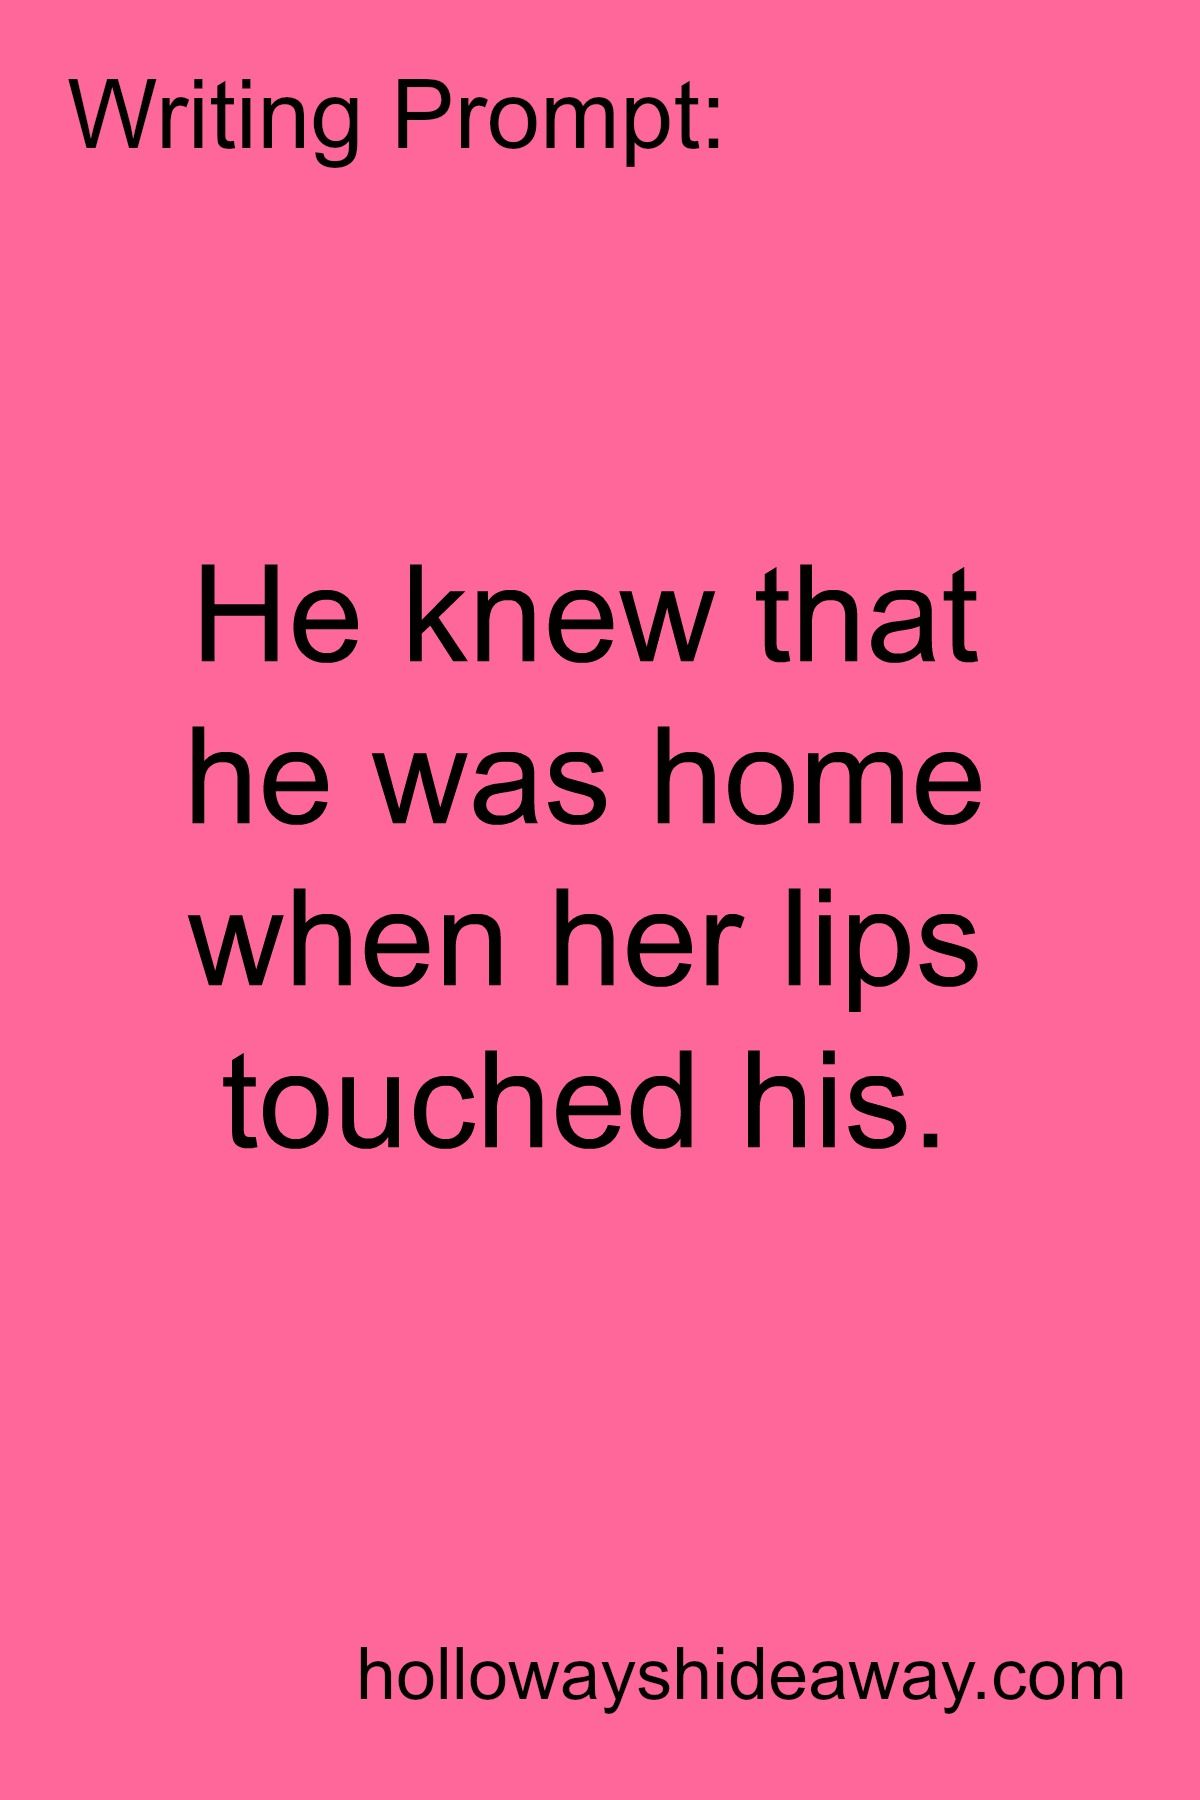 Writing Prompt He Knew That He Was Home When Her Lips Touched His June 2016 Romance Prompts Writing Prompts Romance Writing Dialogue Prompts Writing Promps